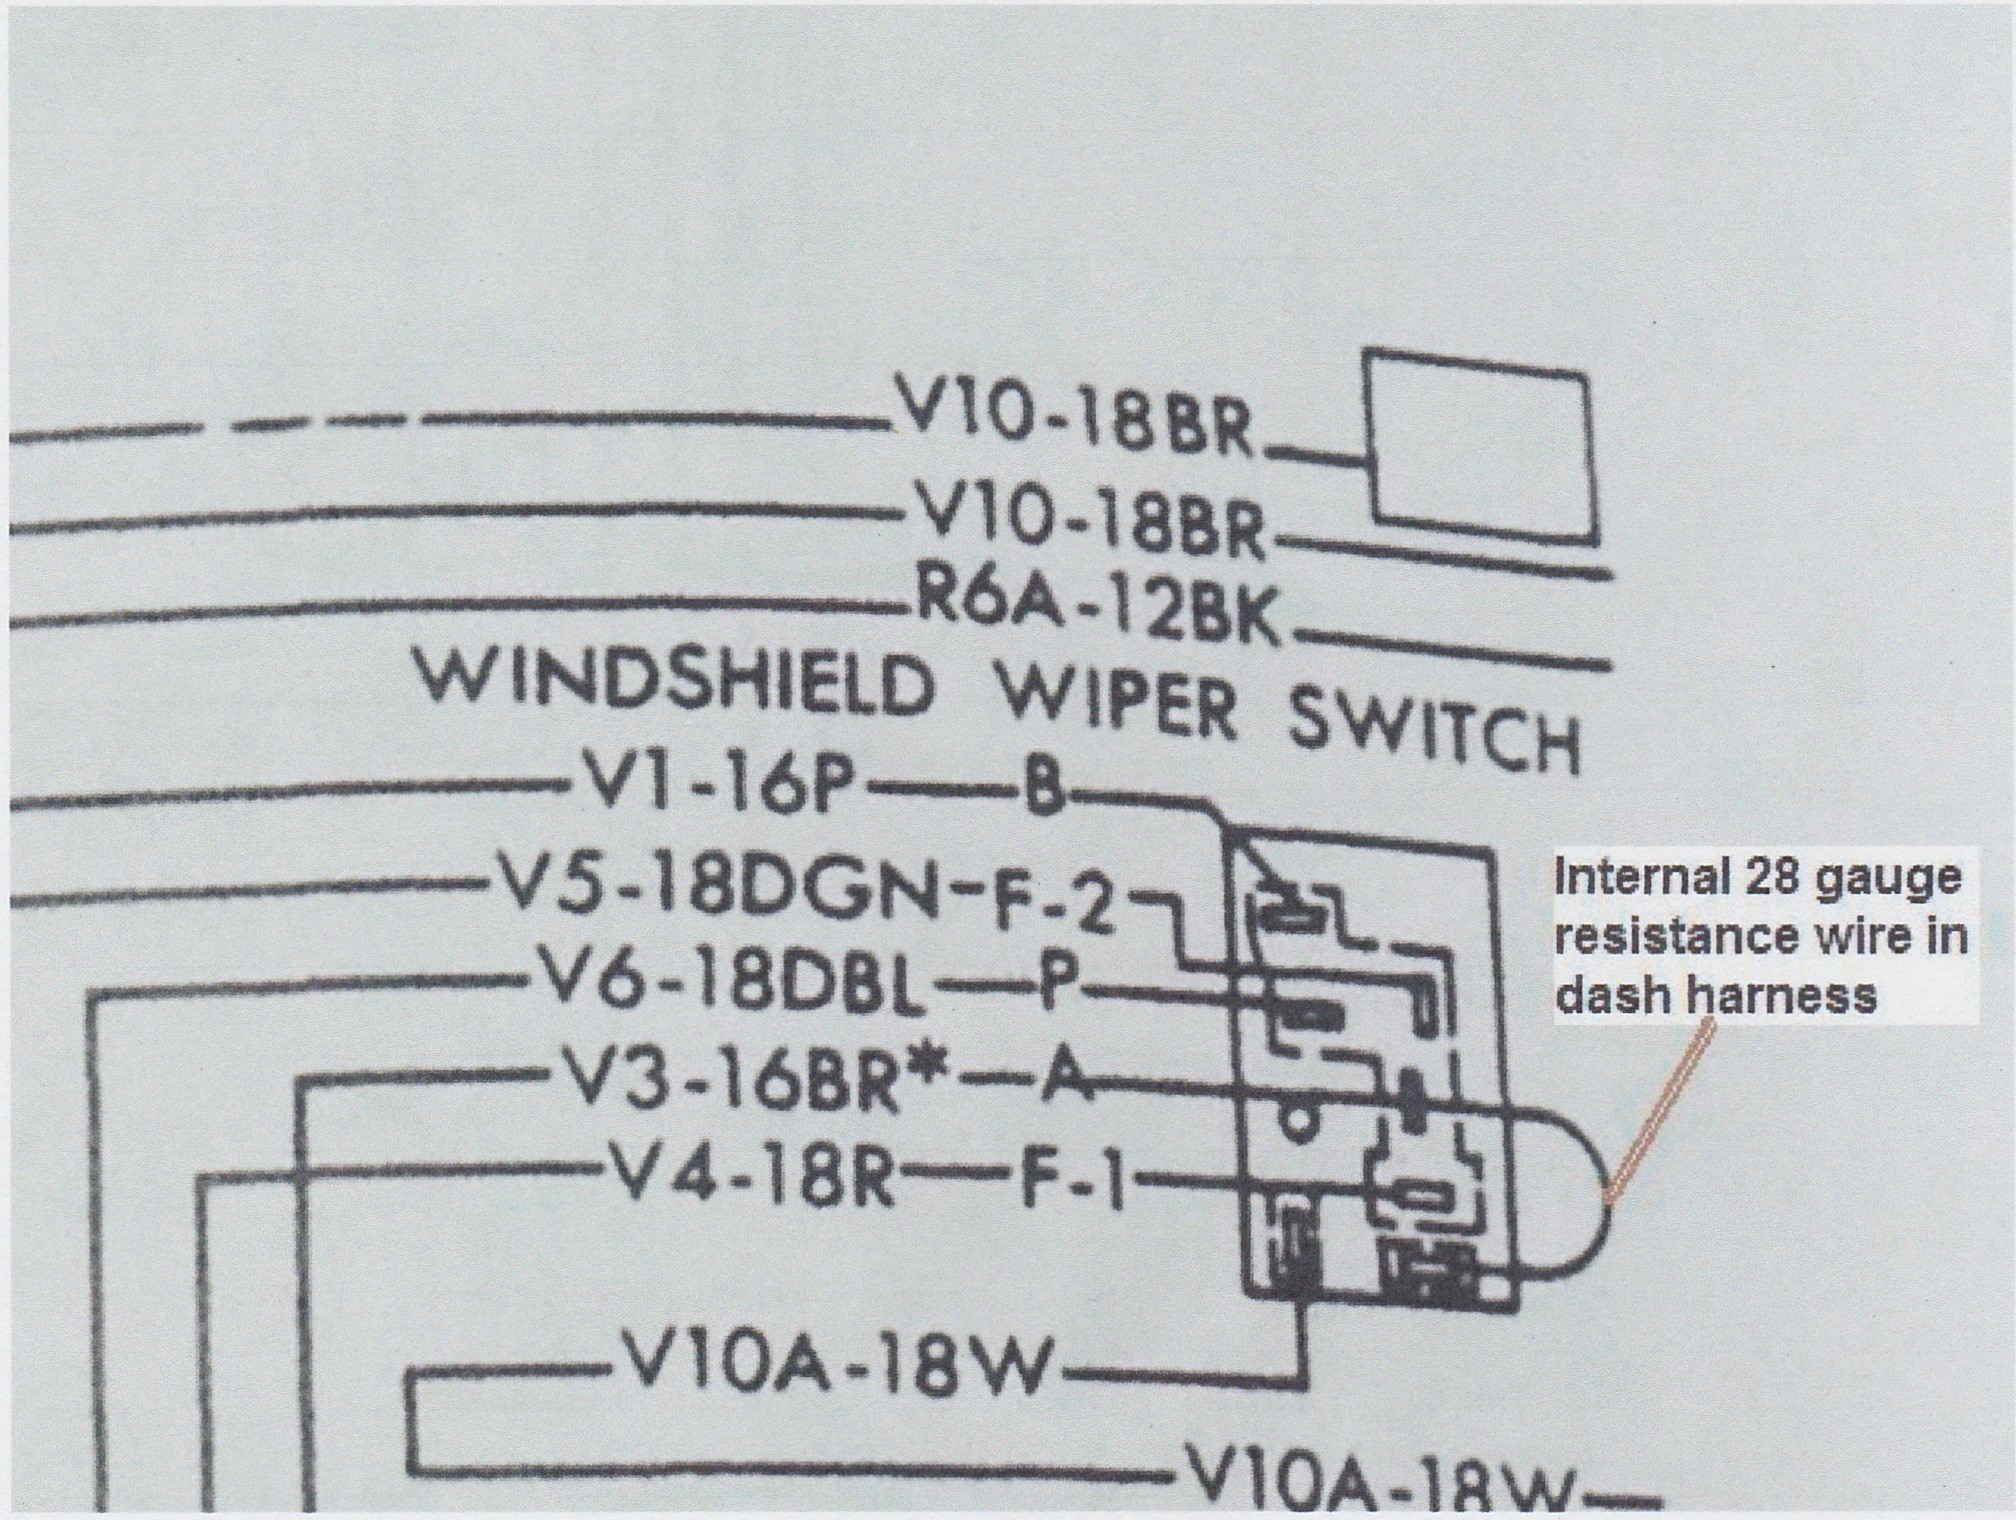 1999 Jeep Grand Cherokee Stereo Wiring Diagram moreover Wiring And Circuit Diagram as well Profi  Wiring Diagram as well Sebring Engine Problems likewise Mazda Mx 5 Fuse Box. on hyundai wiring diagram